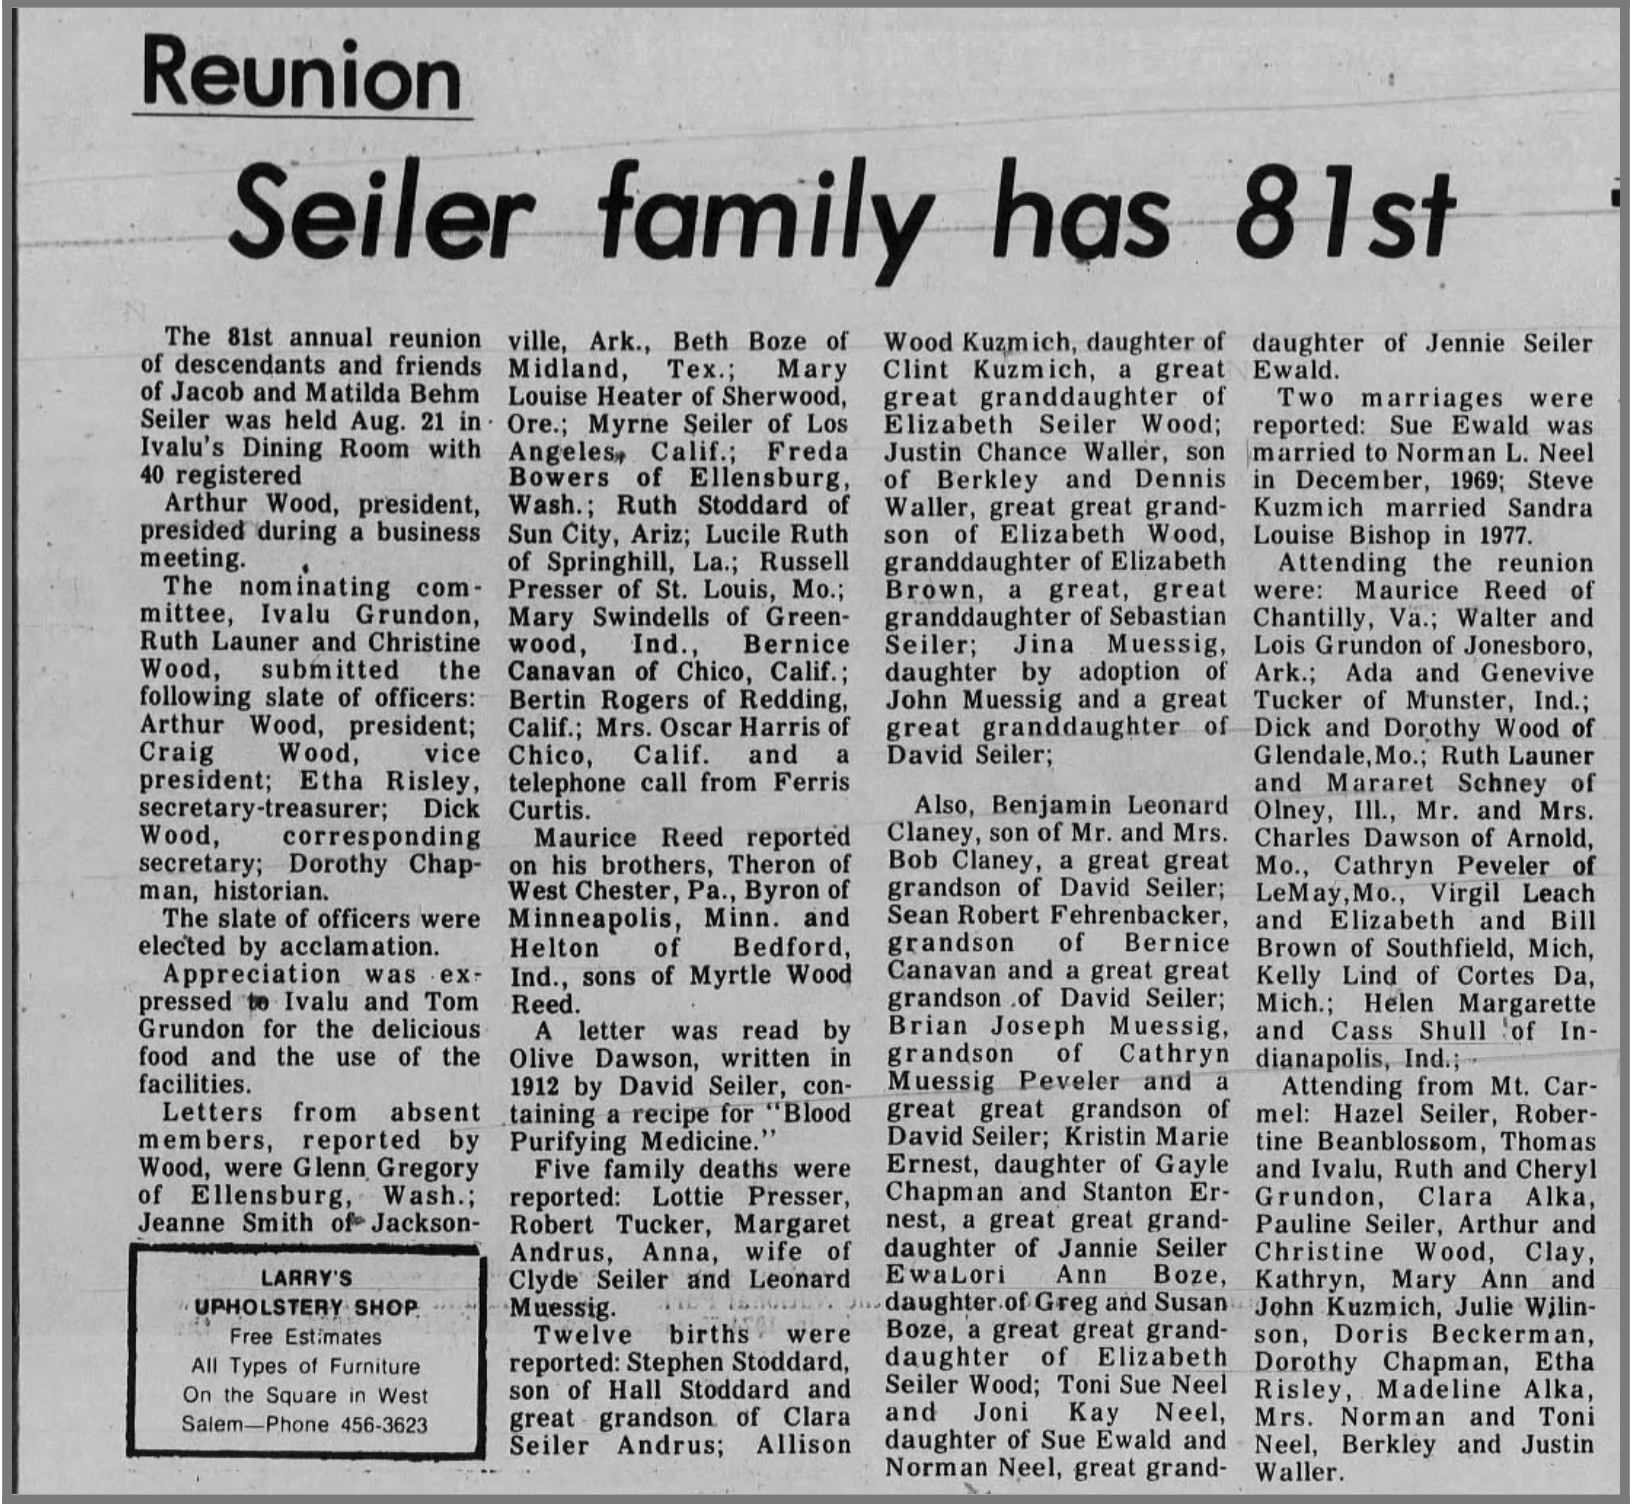 The Daily Republican-Regist (Mount Carmel, IL) 8/31/1977